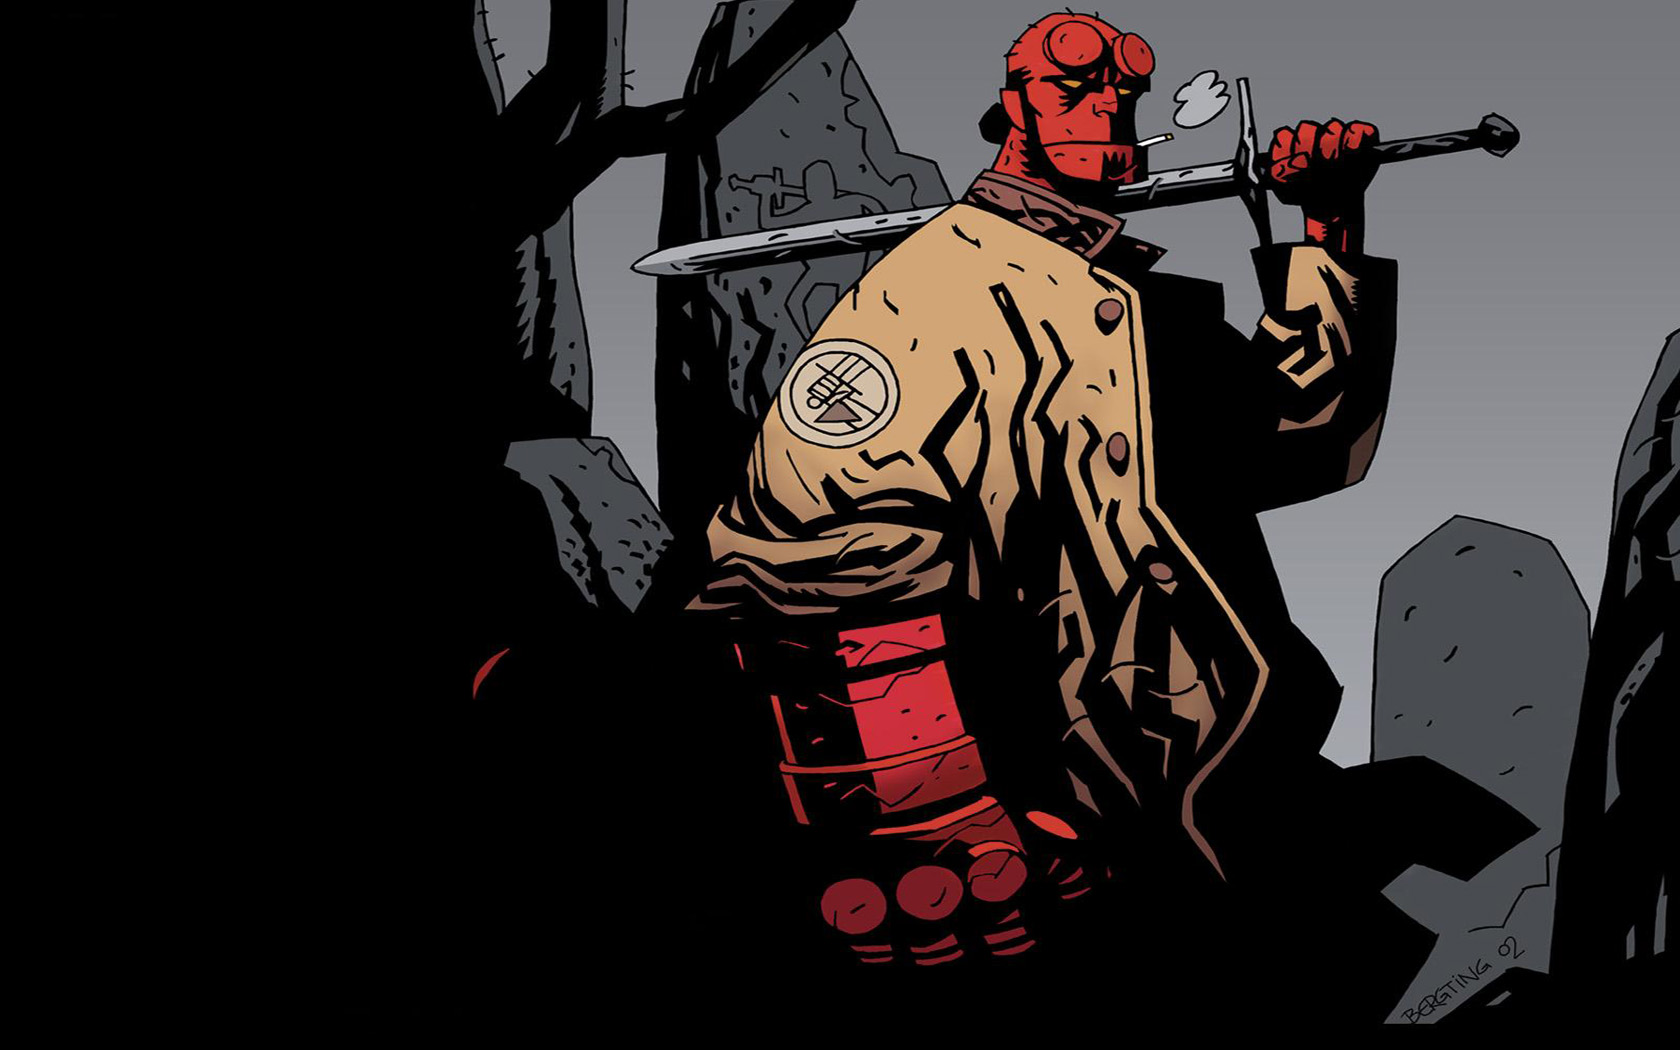 hellboy-animated-series-that-should-happen-soone-or-later